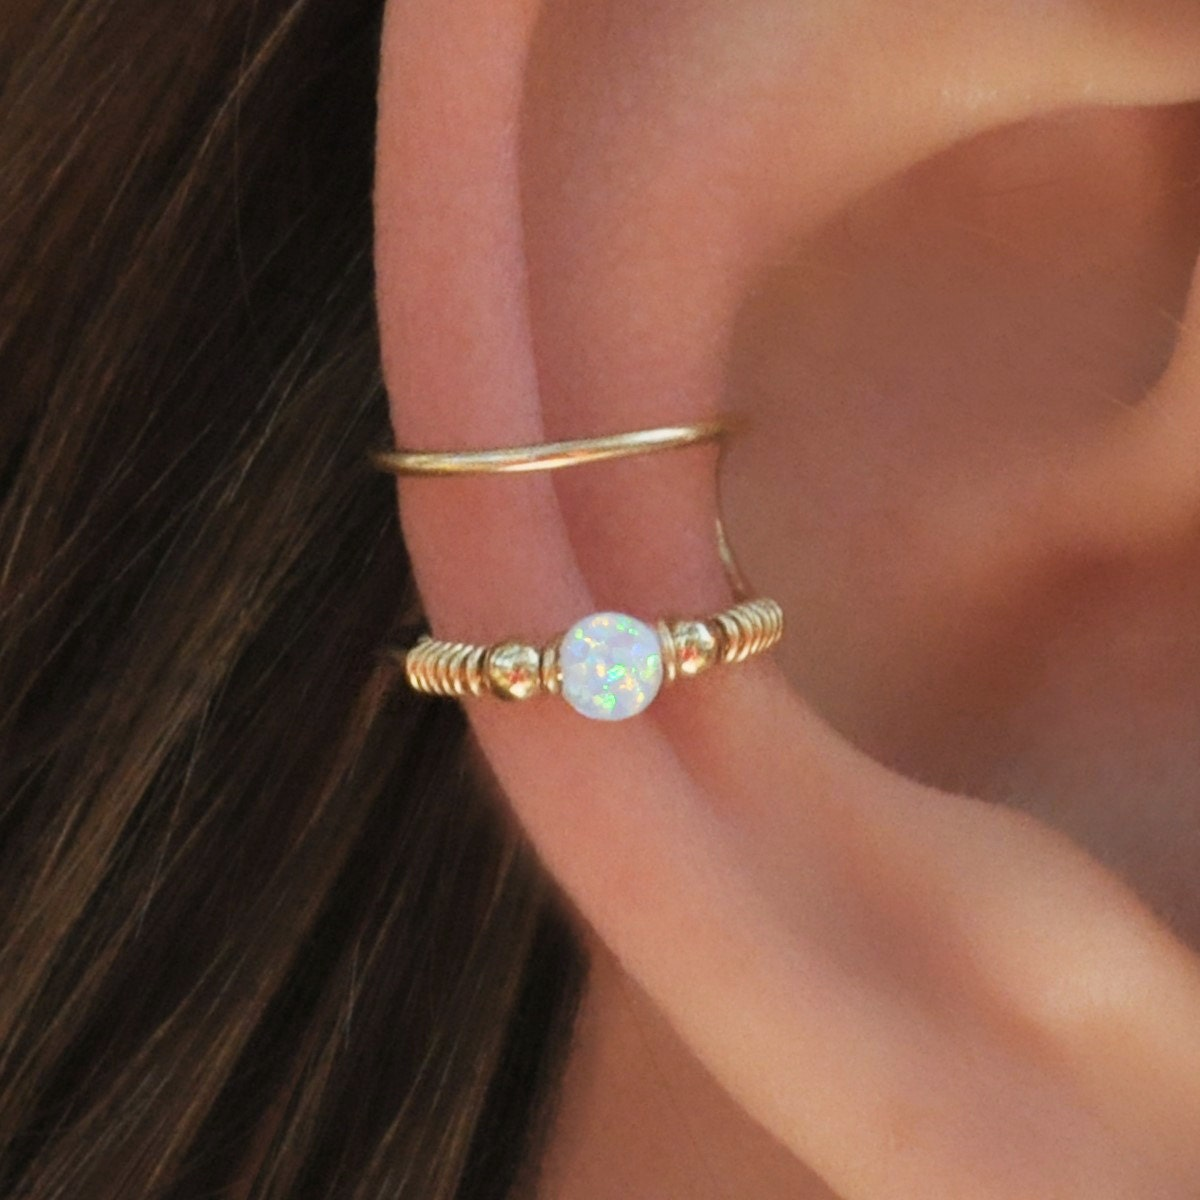 Double Wrap Cuff, White Opal Ear Cuff, Ear Cuff, Fake Piercing, No